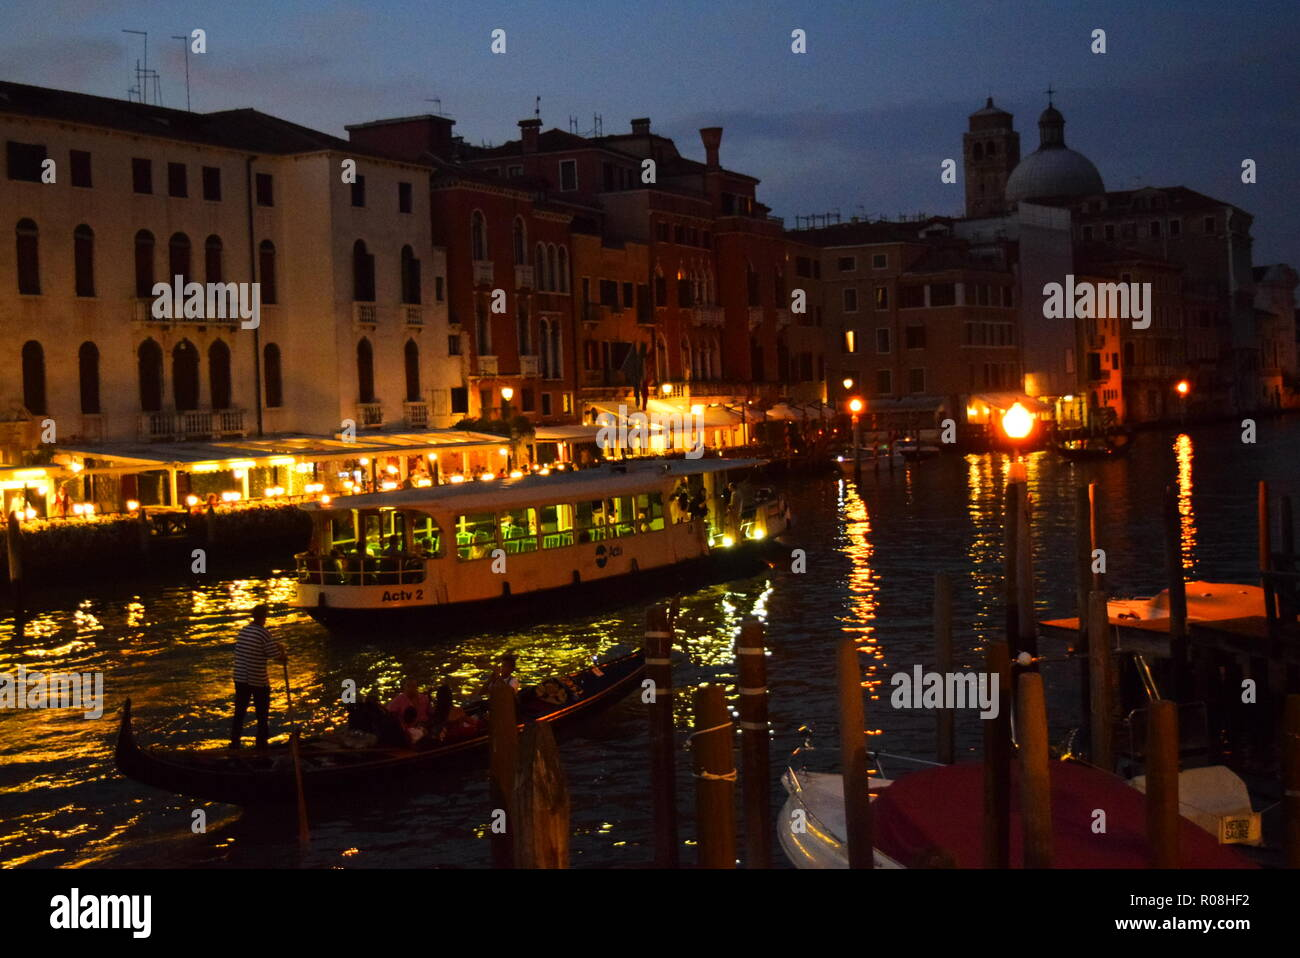 Hd dslr photography of venice italy all the photos are taken in real venice italy you can see the grand canal boats places buildings a must see